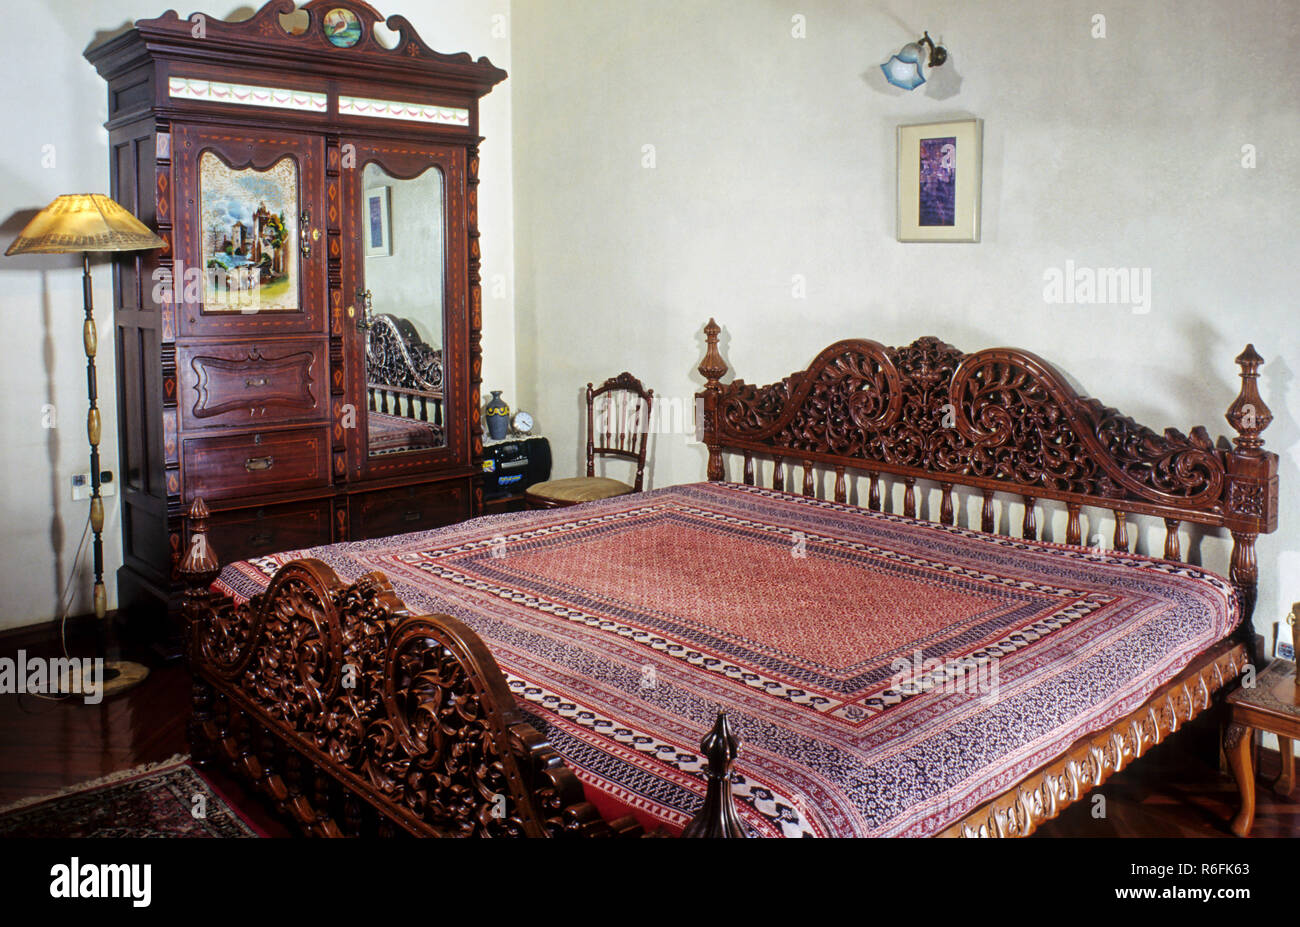 Bed Room, House Homes, India - Stock Image